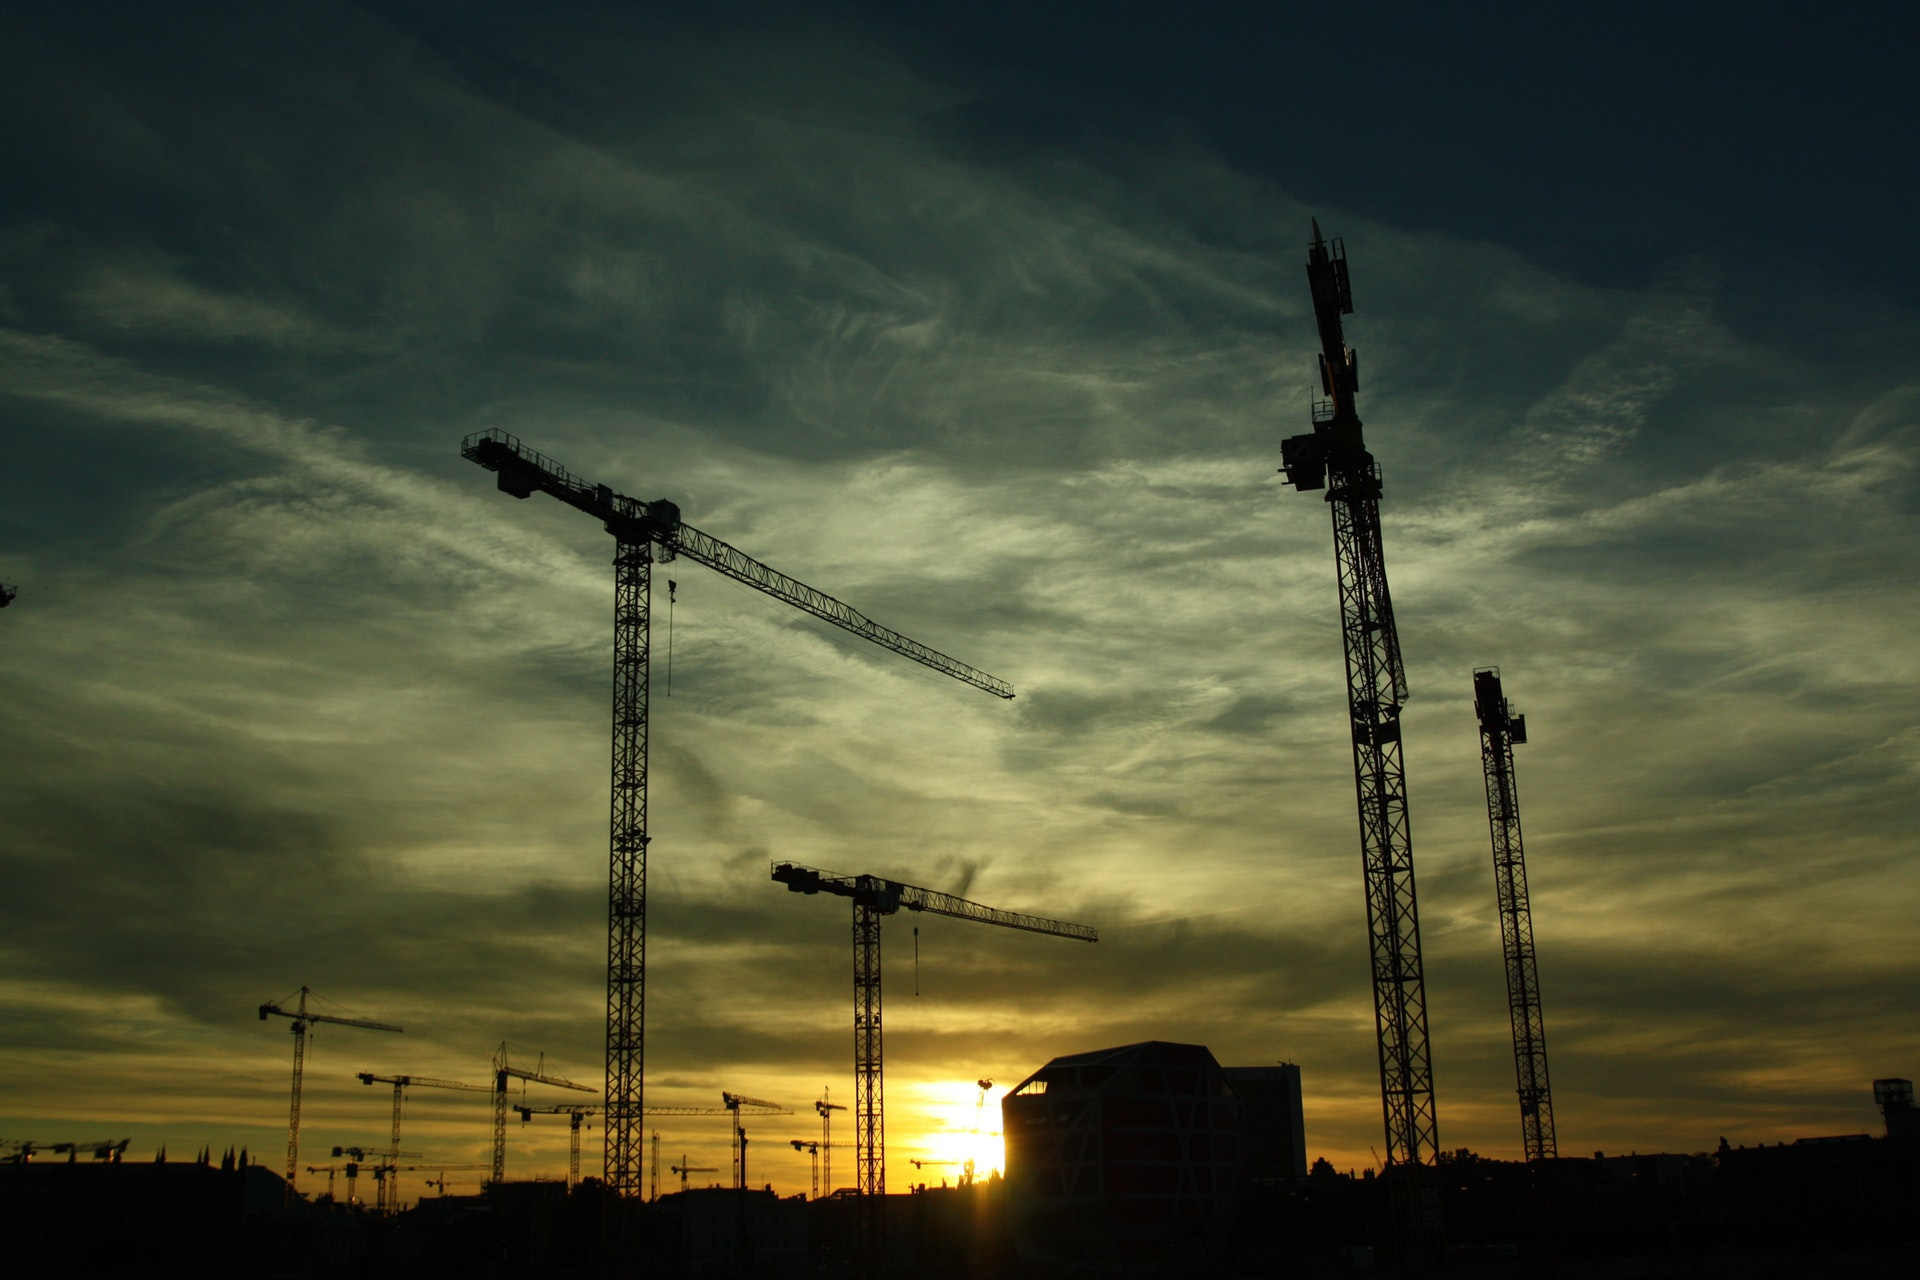 Construction is on the rise in North Africa